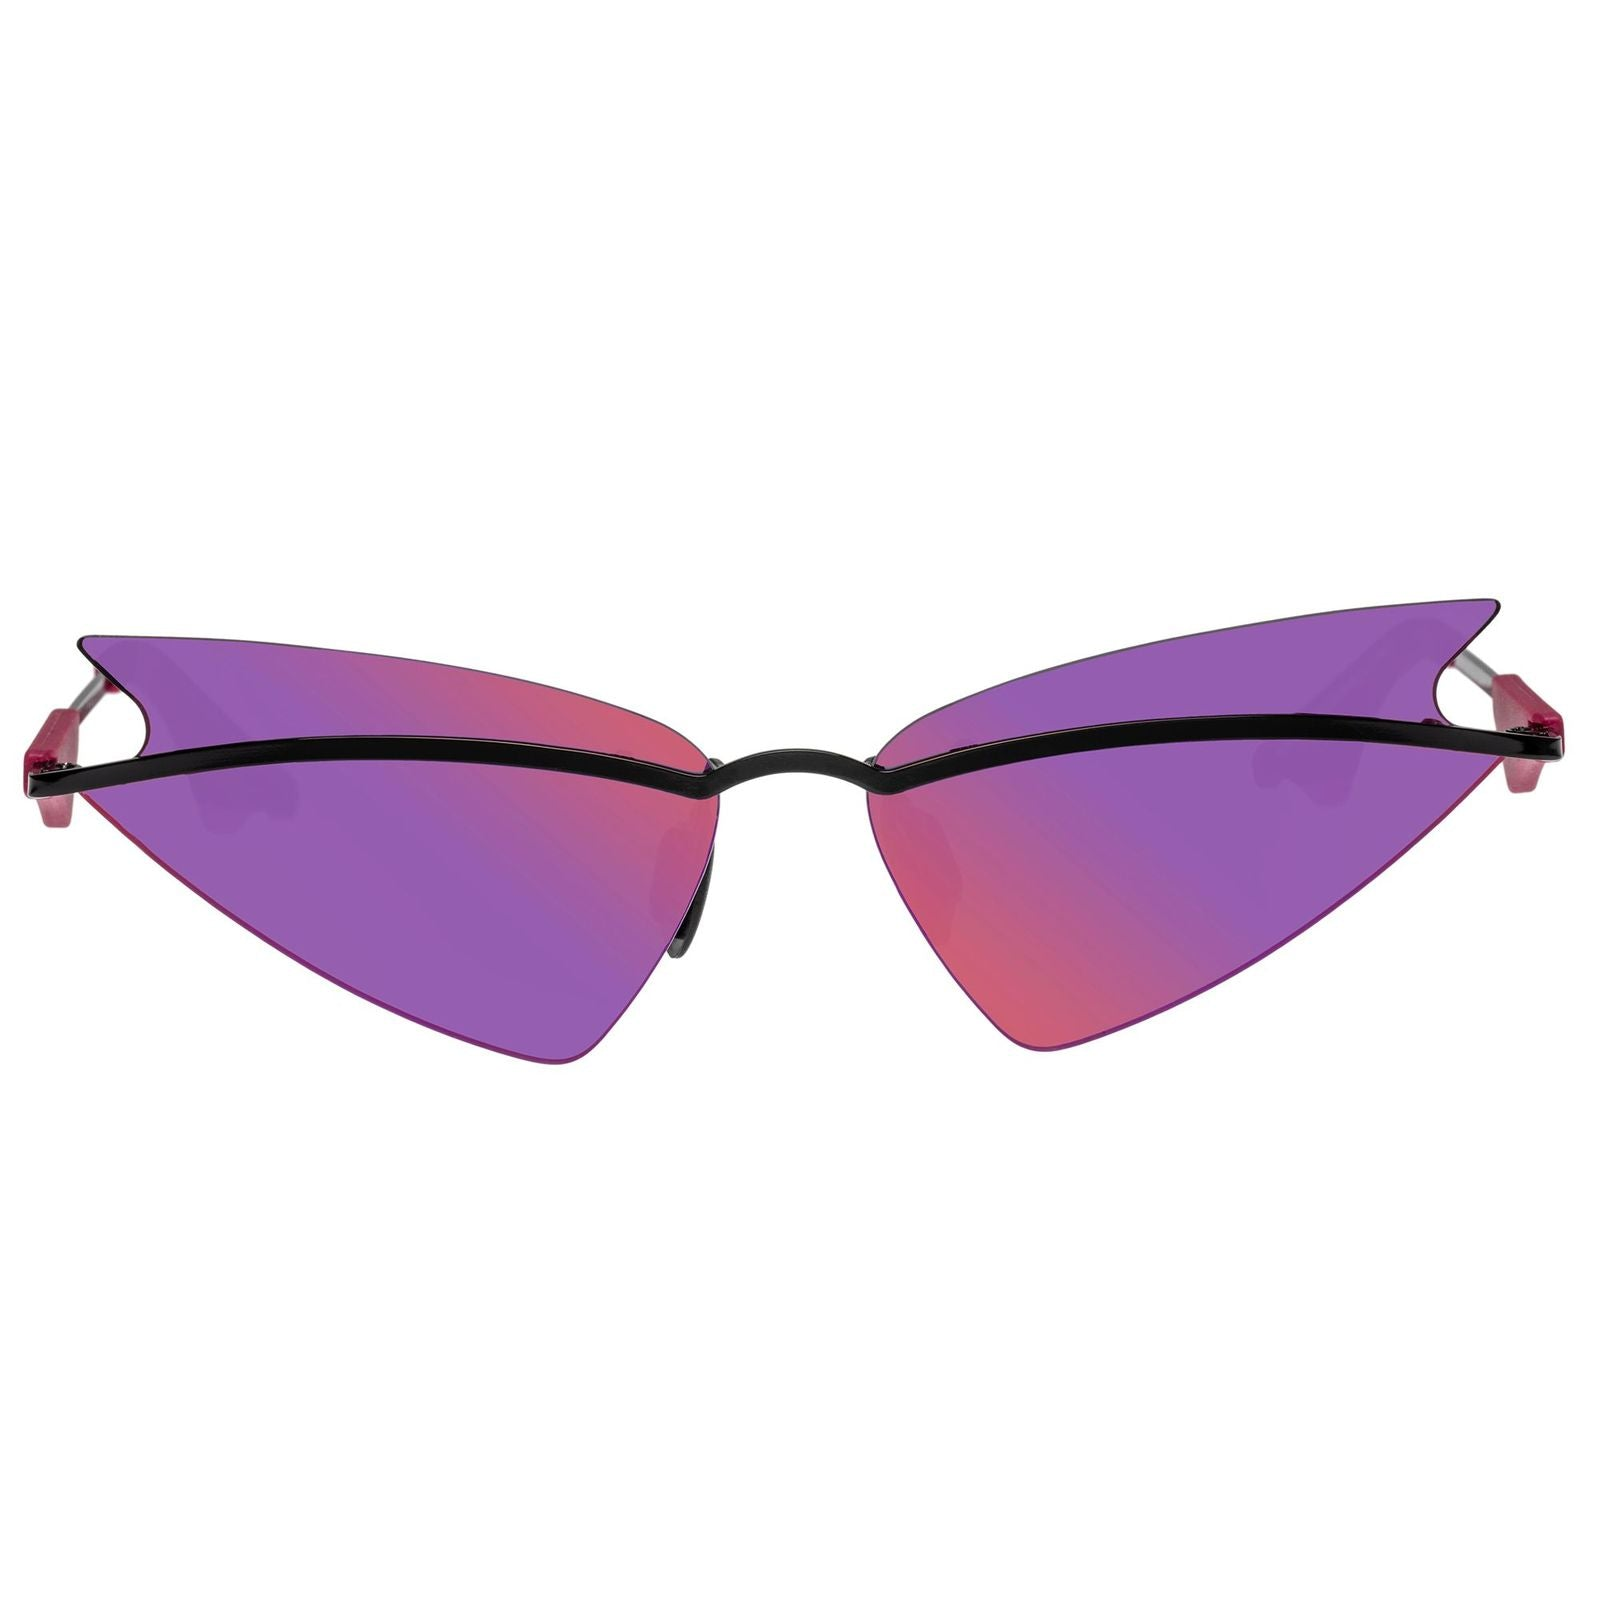 CHRISTIAN COWAN X LE SPECS  / SHEEO / BLACK PURPLE MIRROR